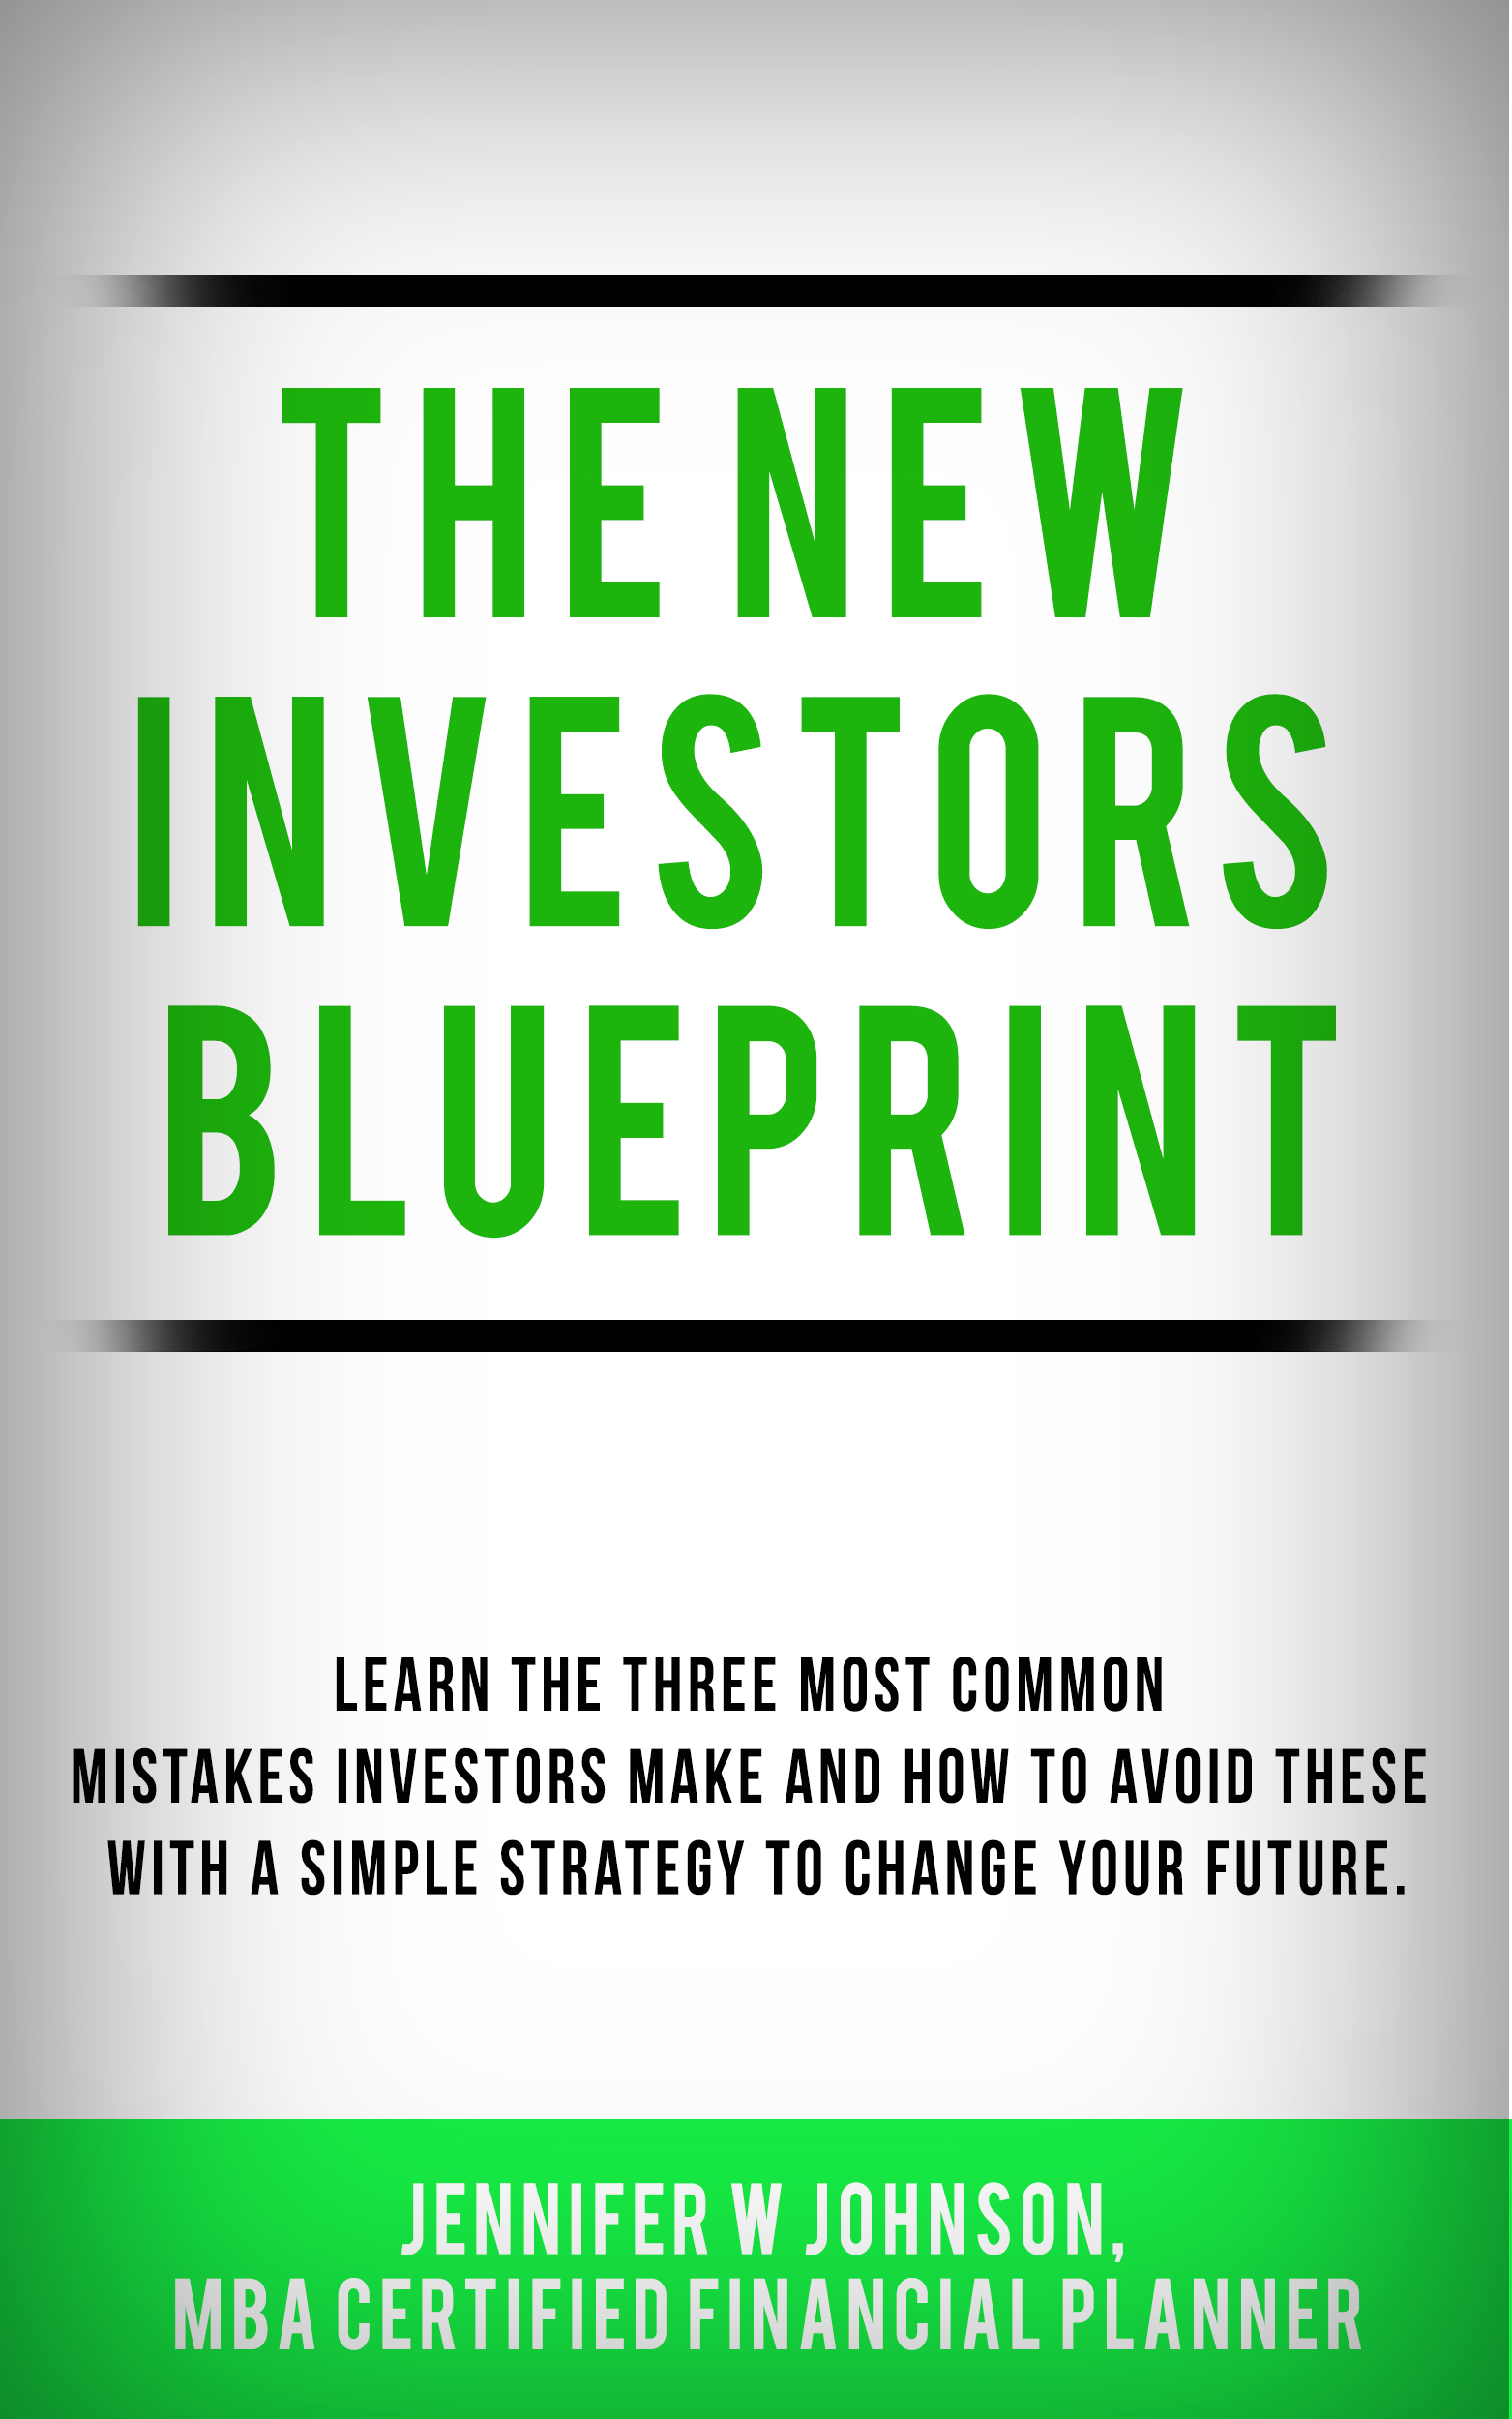 The_New_Investors_Blueprint.jpg